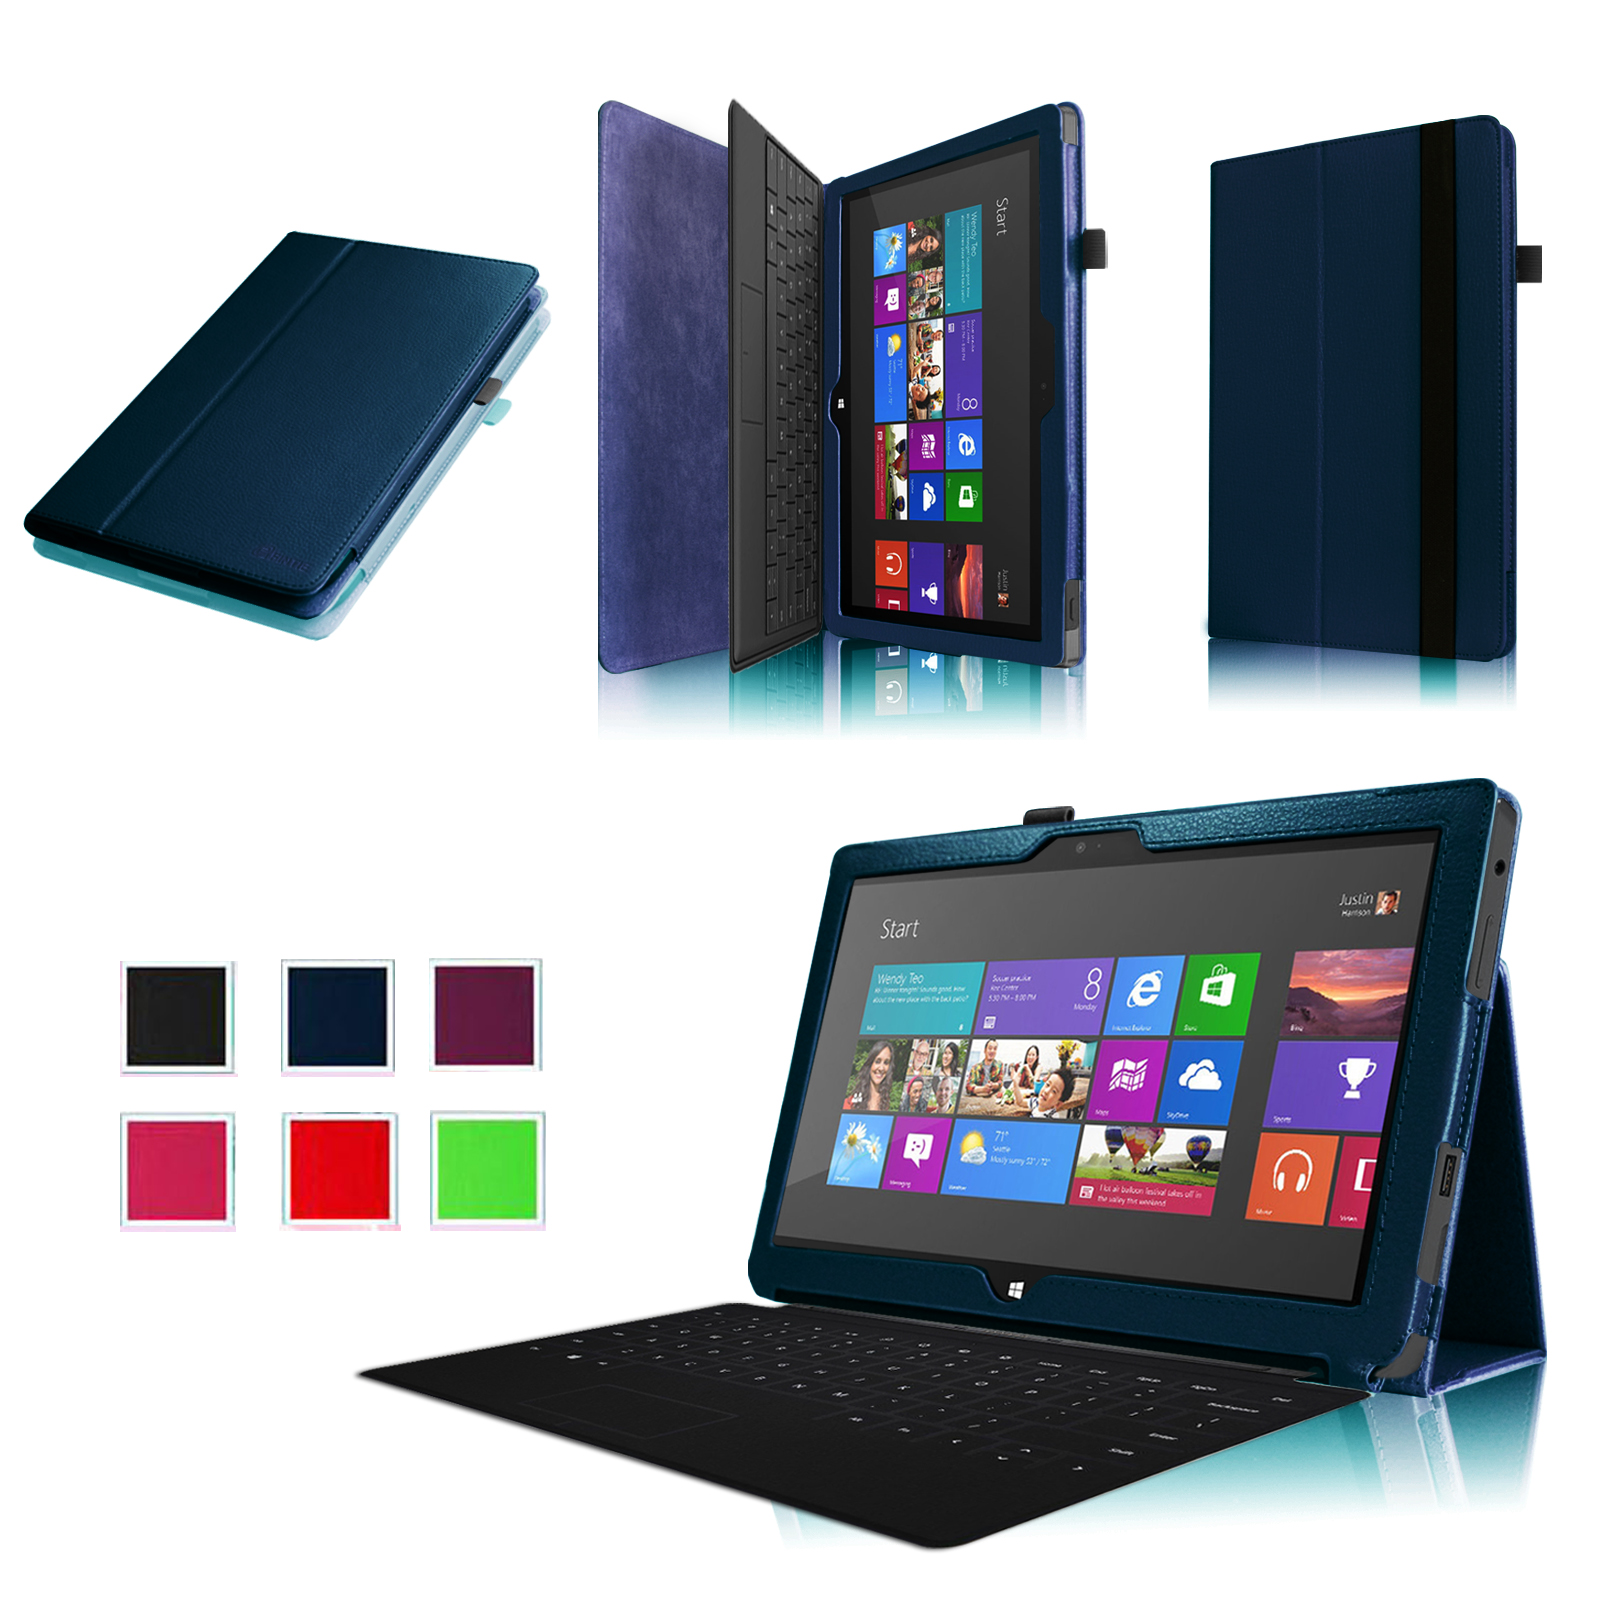 Fintie Microsoft Surface RT / Surface 2 10.6 inch Tablet Folio Case - Slim Fit PU Leather Stand Cover, Navy